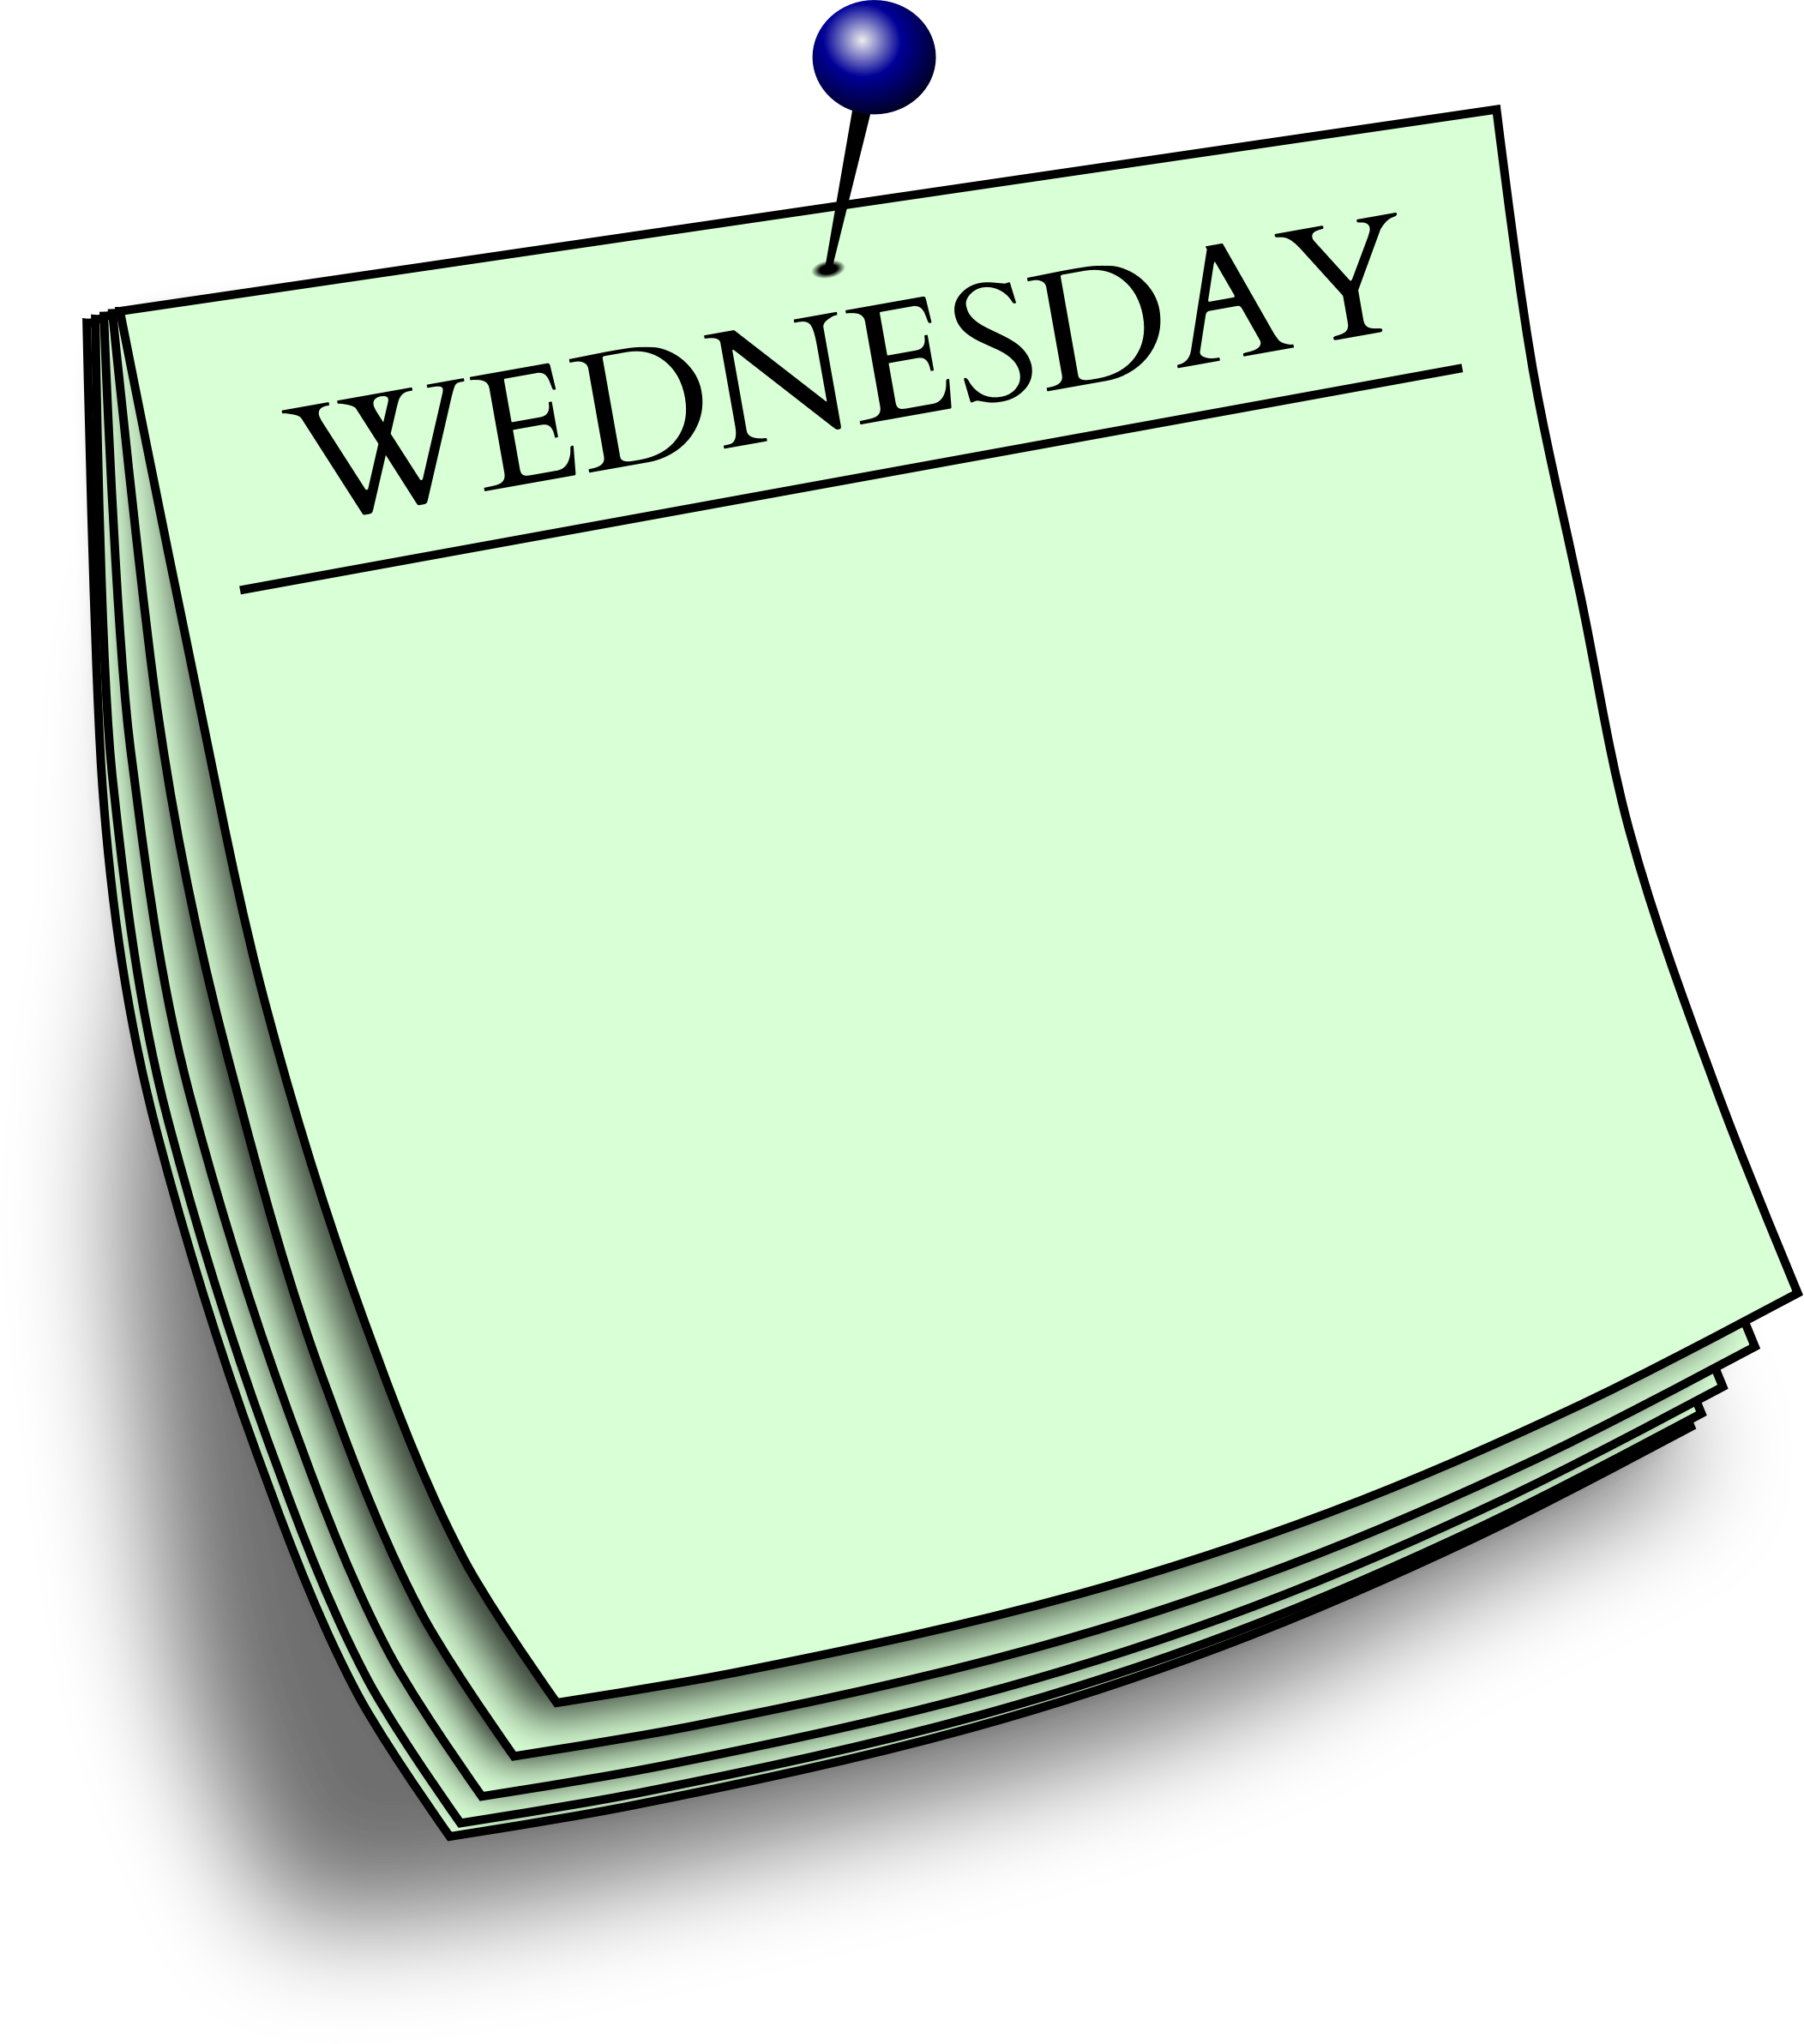 Daily note - Wednesday by Firkin